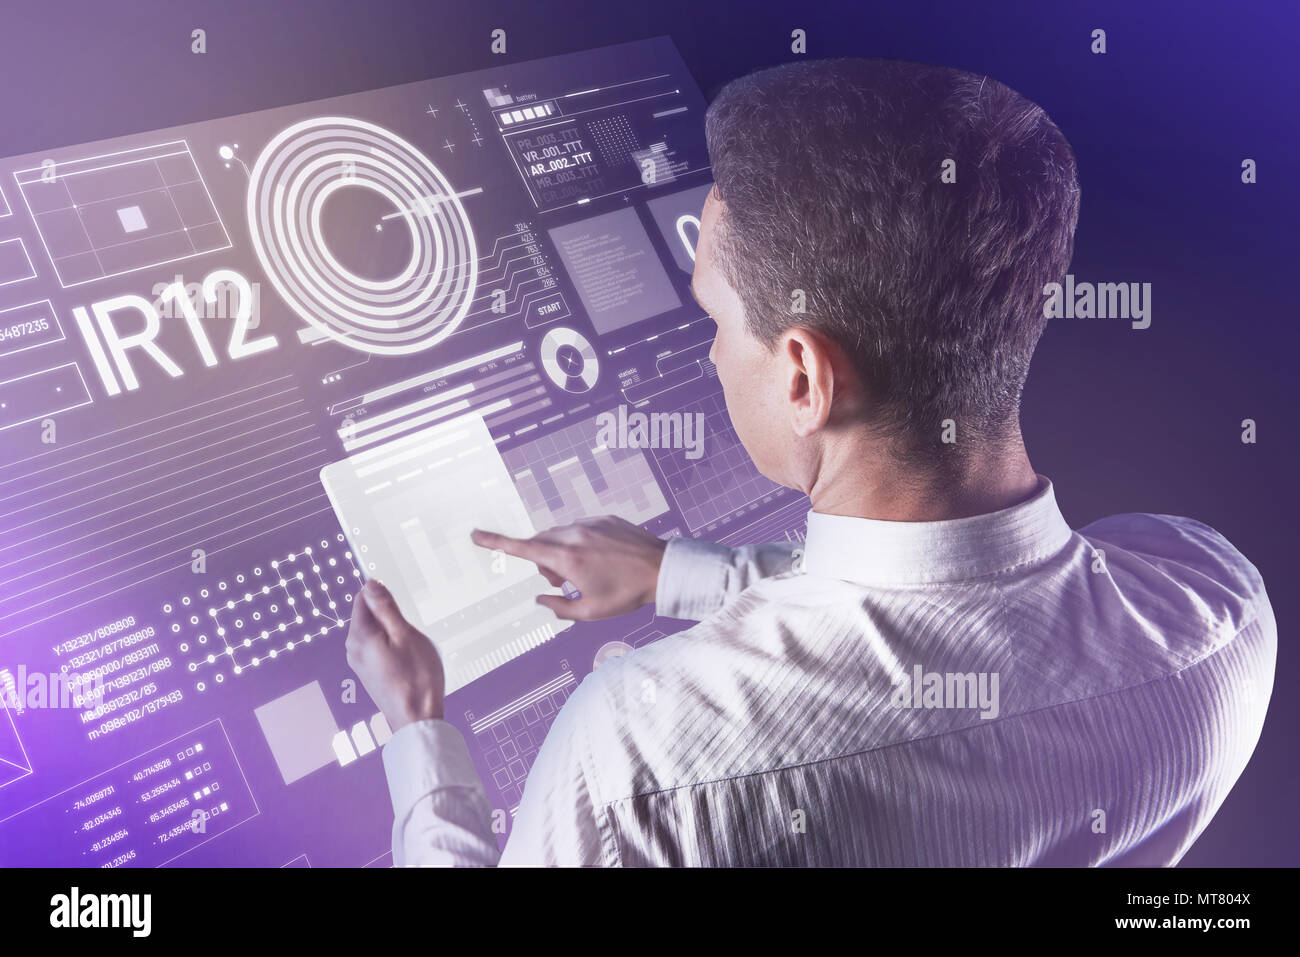 Calm young man holding a futuristic tablet and checking the information - Stock Image